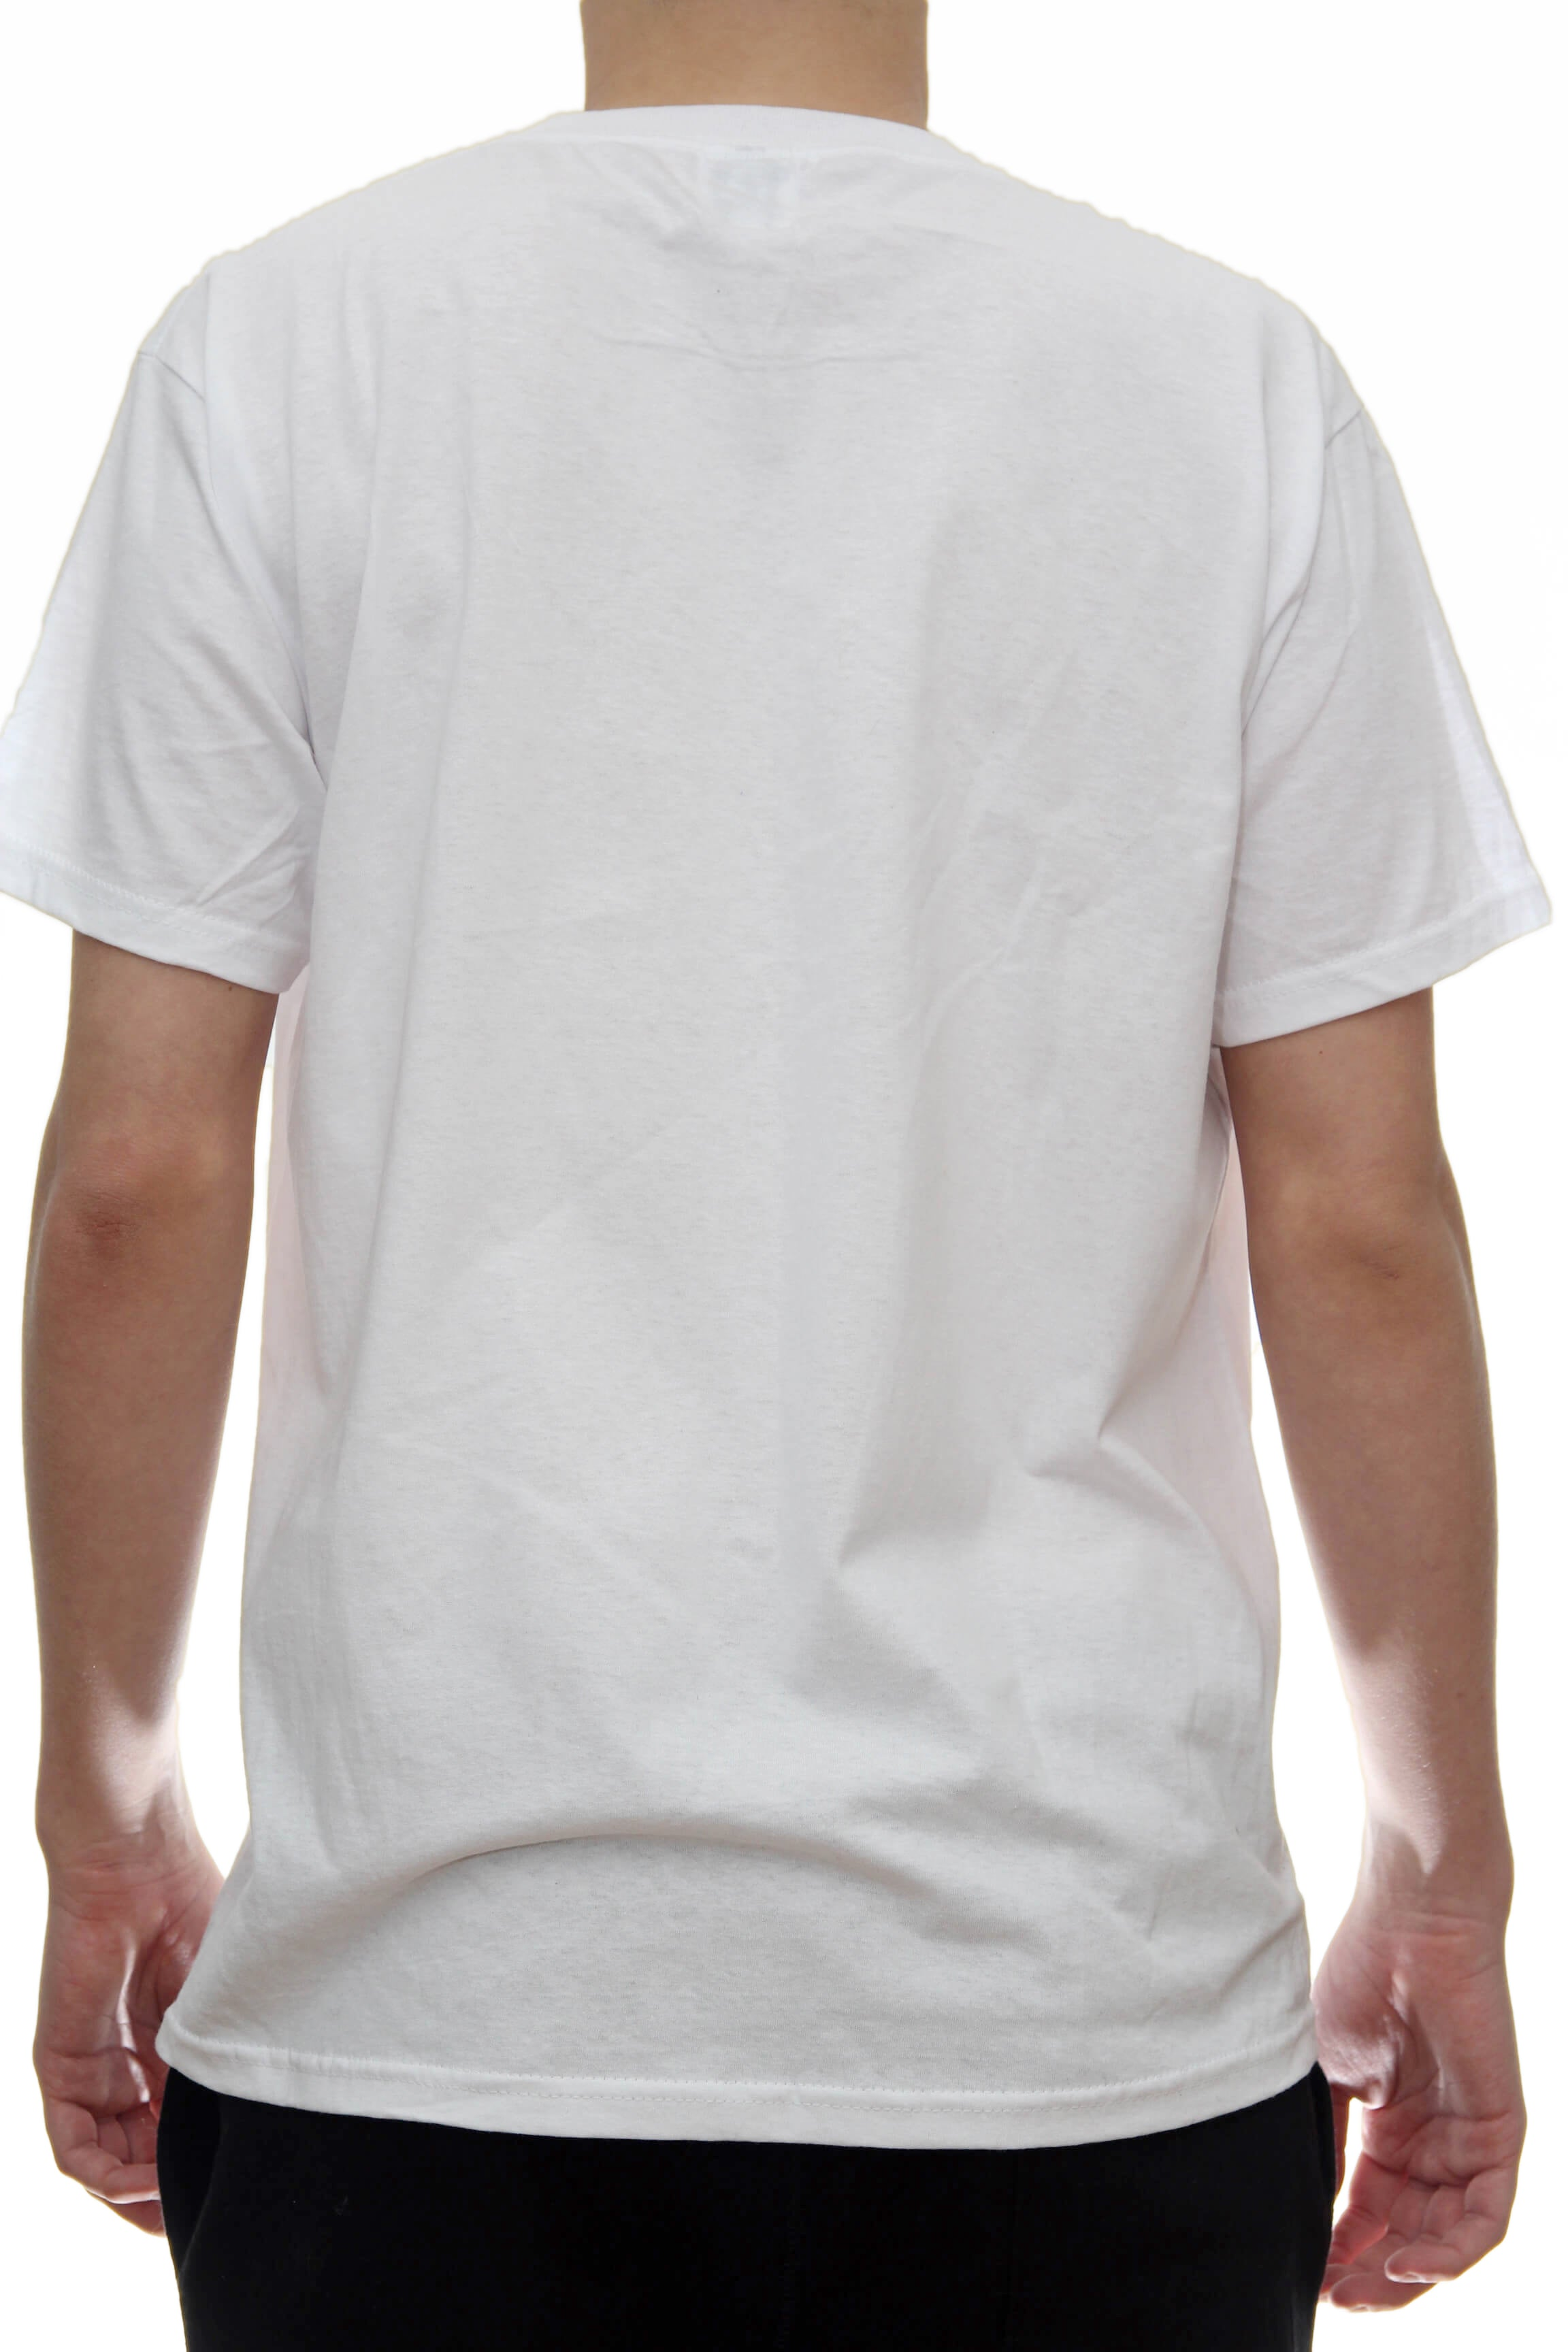 BOX LOGO T-SHIRT / WHITE